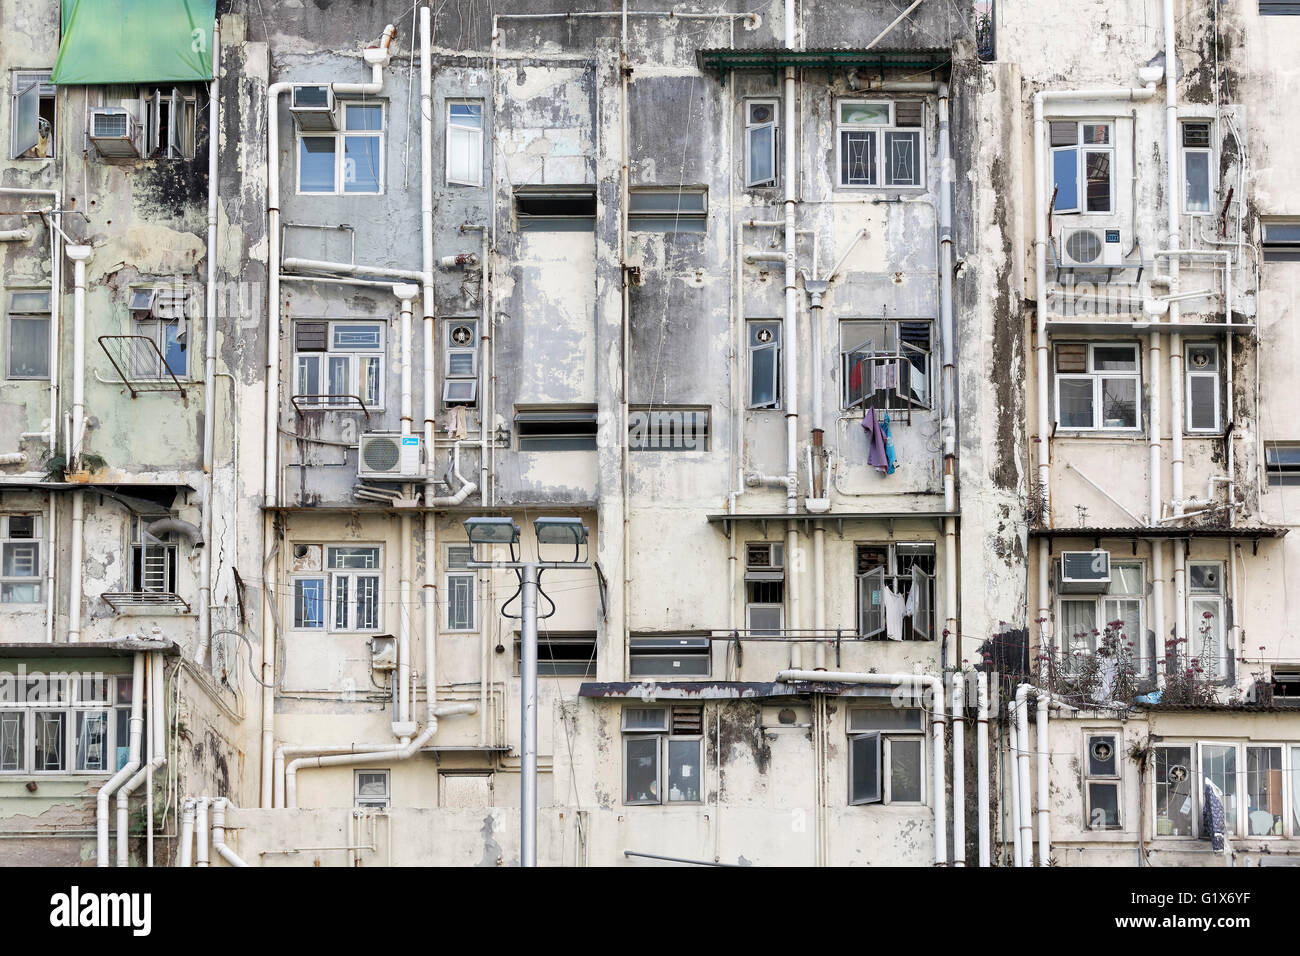 Shabby, ramshackle house facade with external drains and air conditioners, House in Victoria City, Sheung Wan, Hong - Stock Image